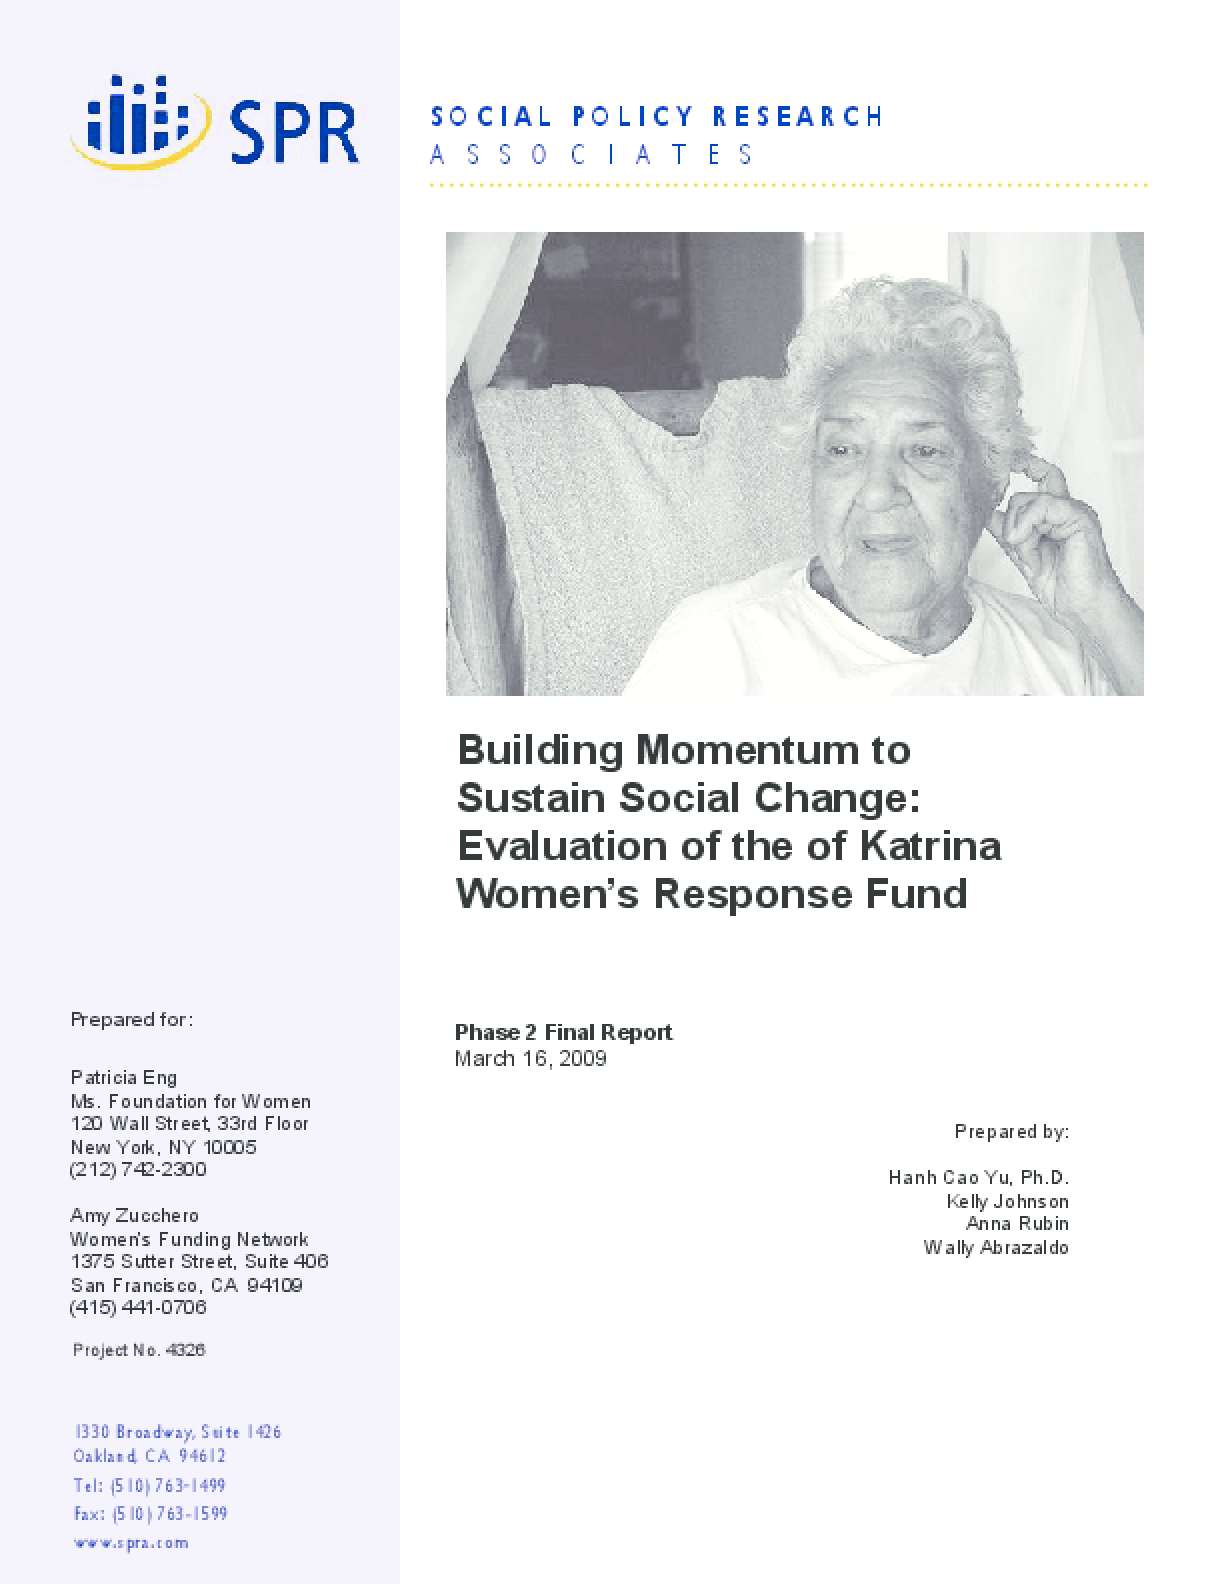 Building Momentum to Sustain Social Change Evaluation of the of Katrina Women's Response Fund